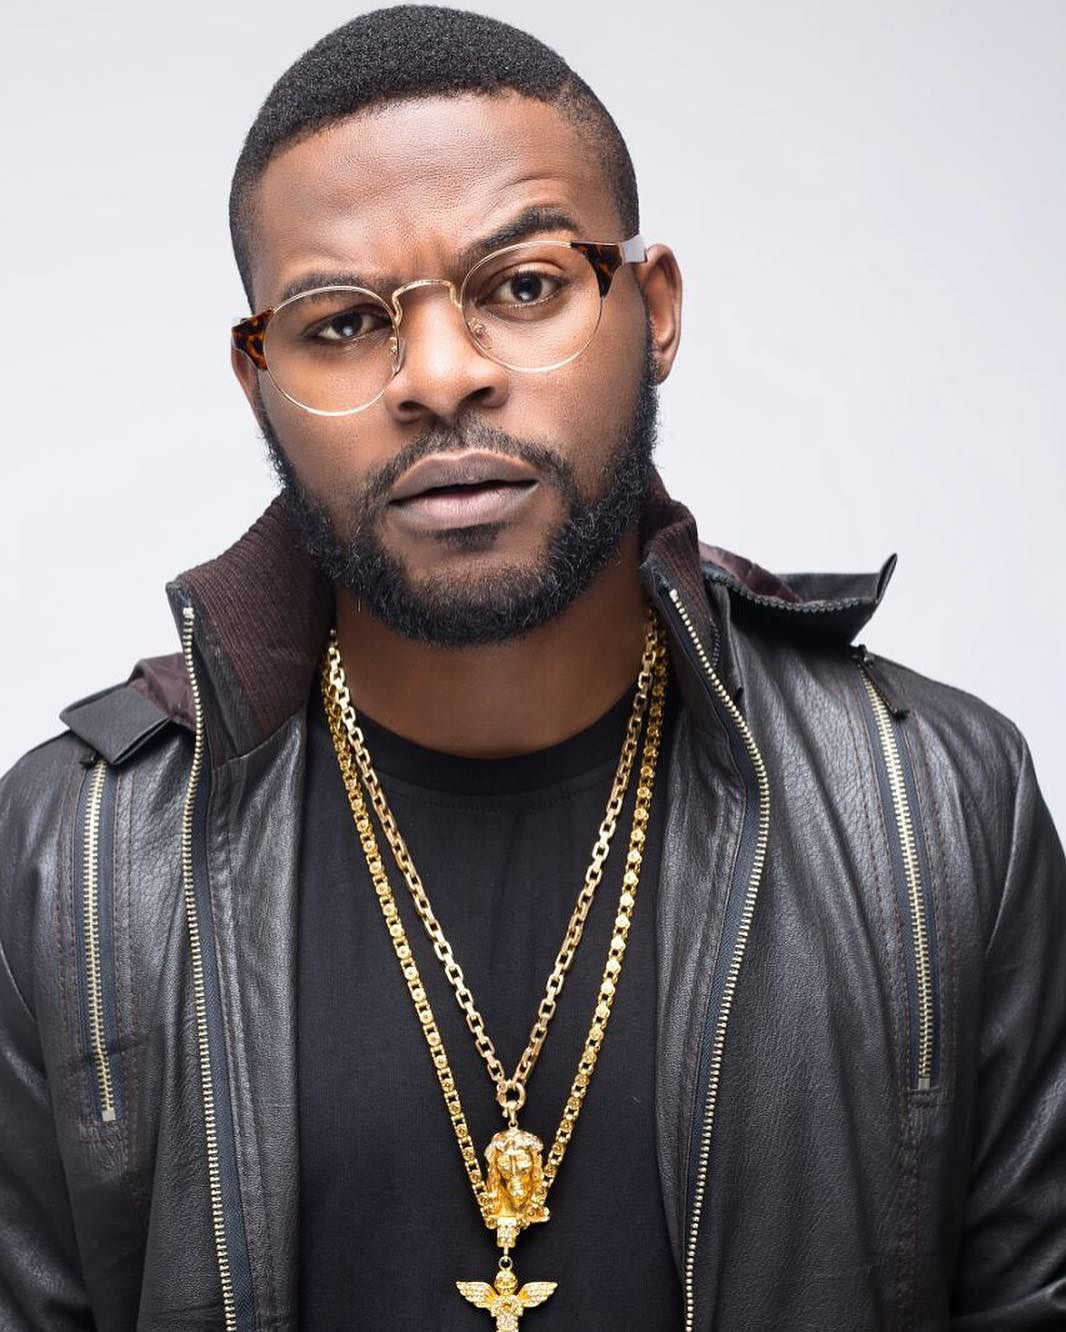 Falz the bahd guy 2